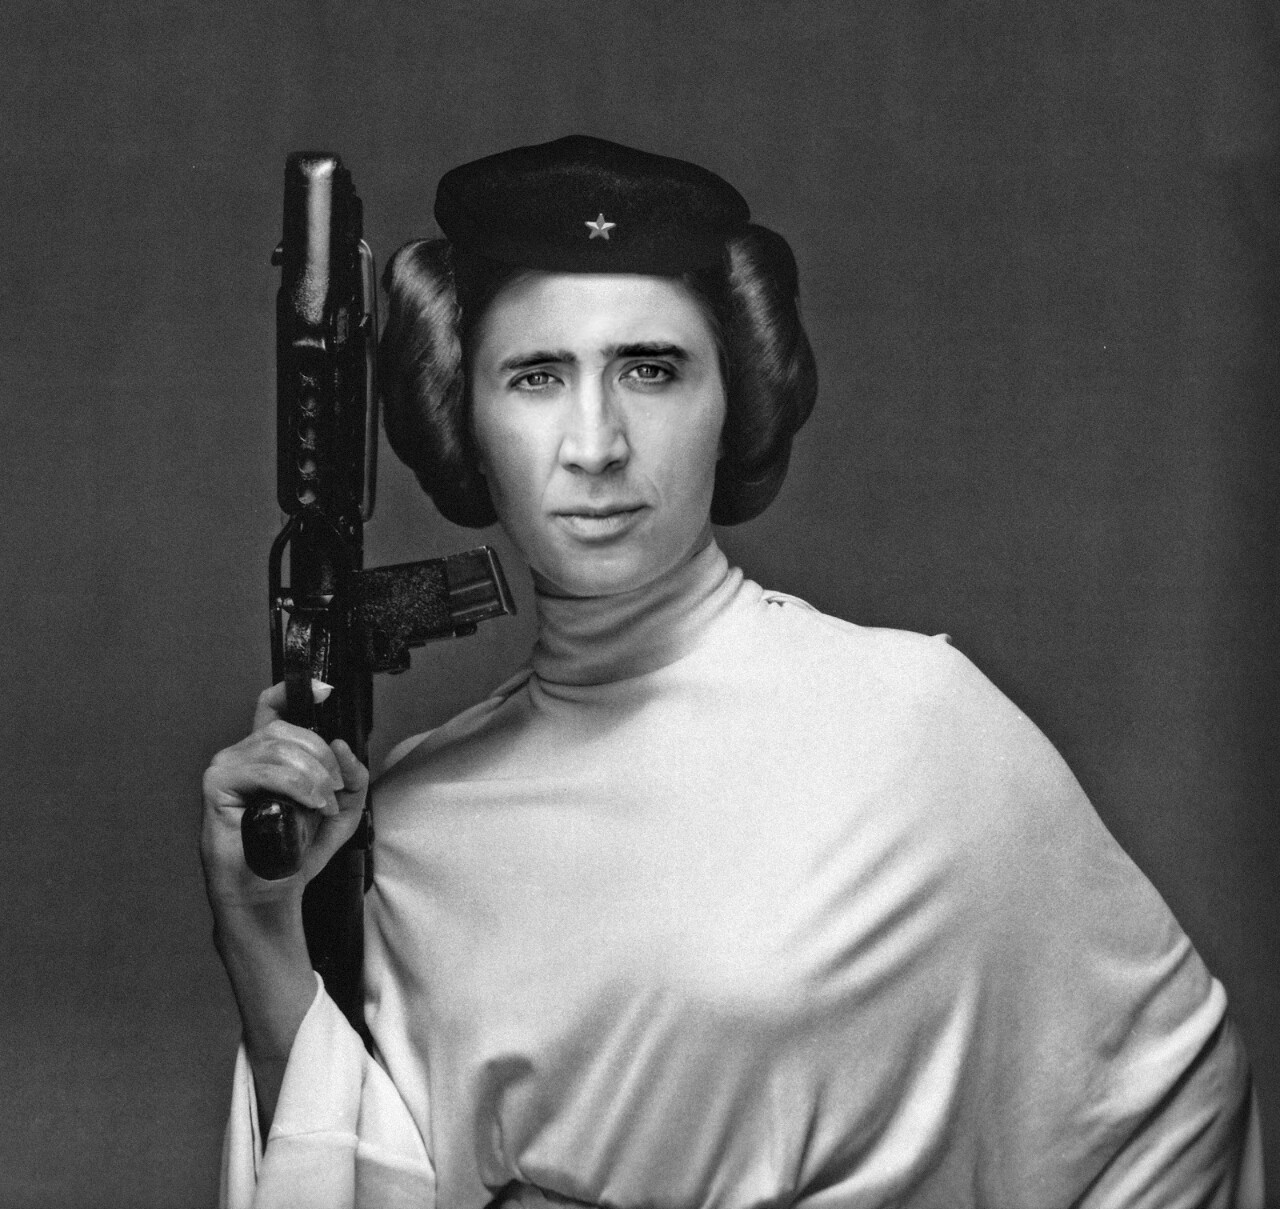 Ari loves Nic Cage and Star Wars. :)